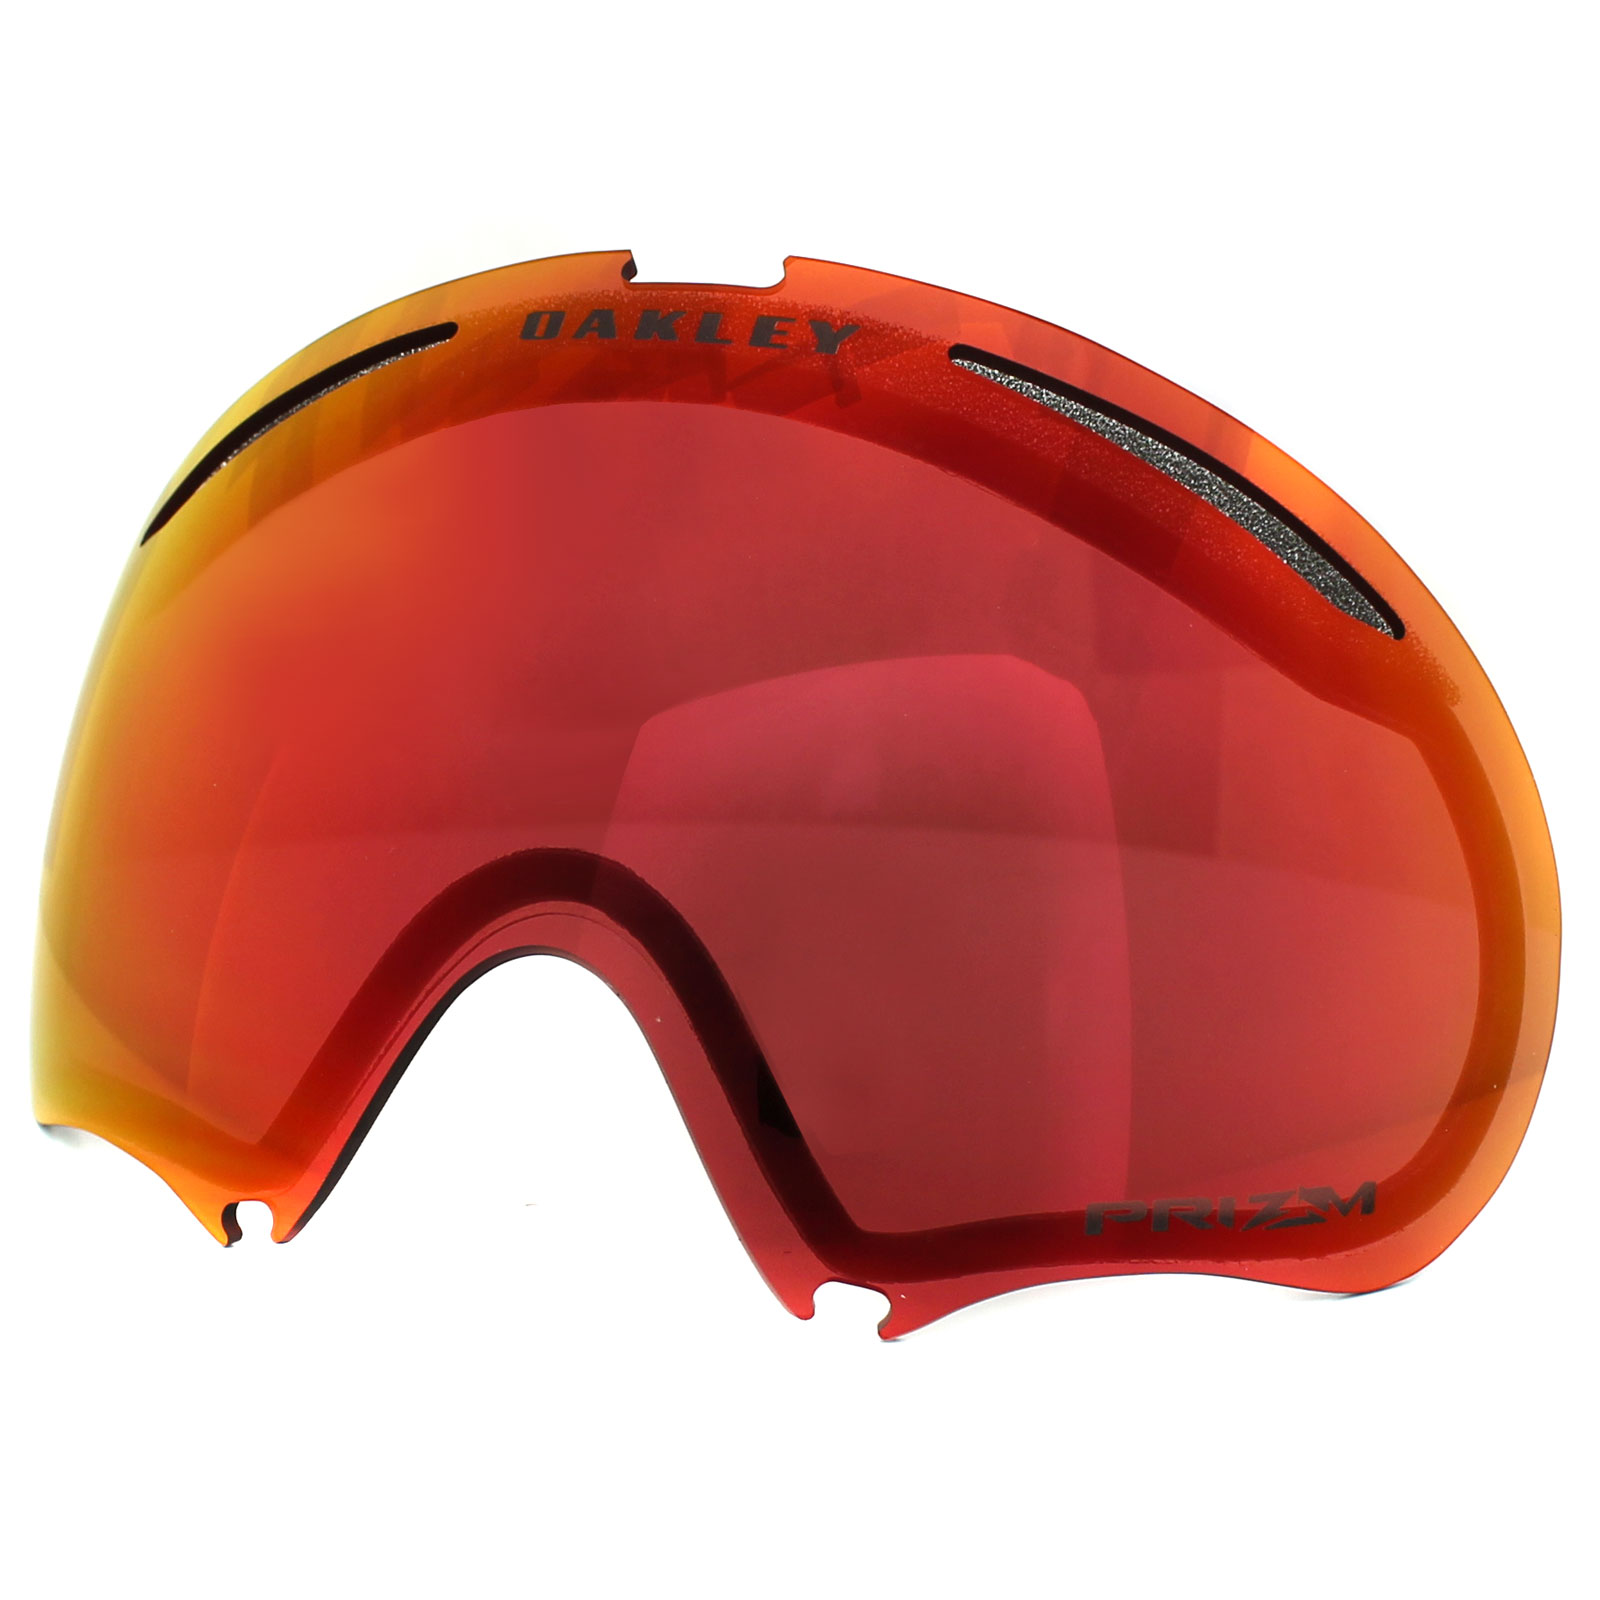 941afec71f Sentinel Oakley Ski Snow Goggles Replacement Lens A Frame 2.0 101-244-005  Prizm Torch